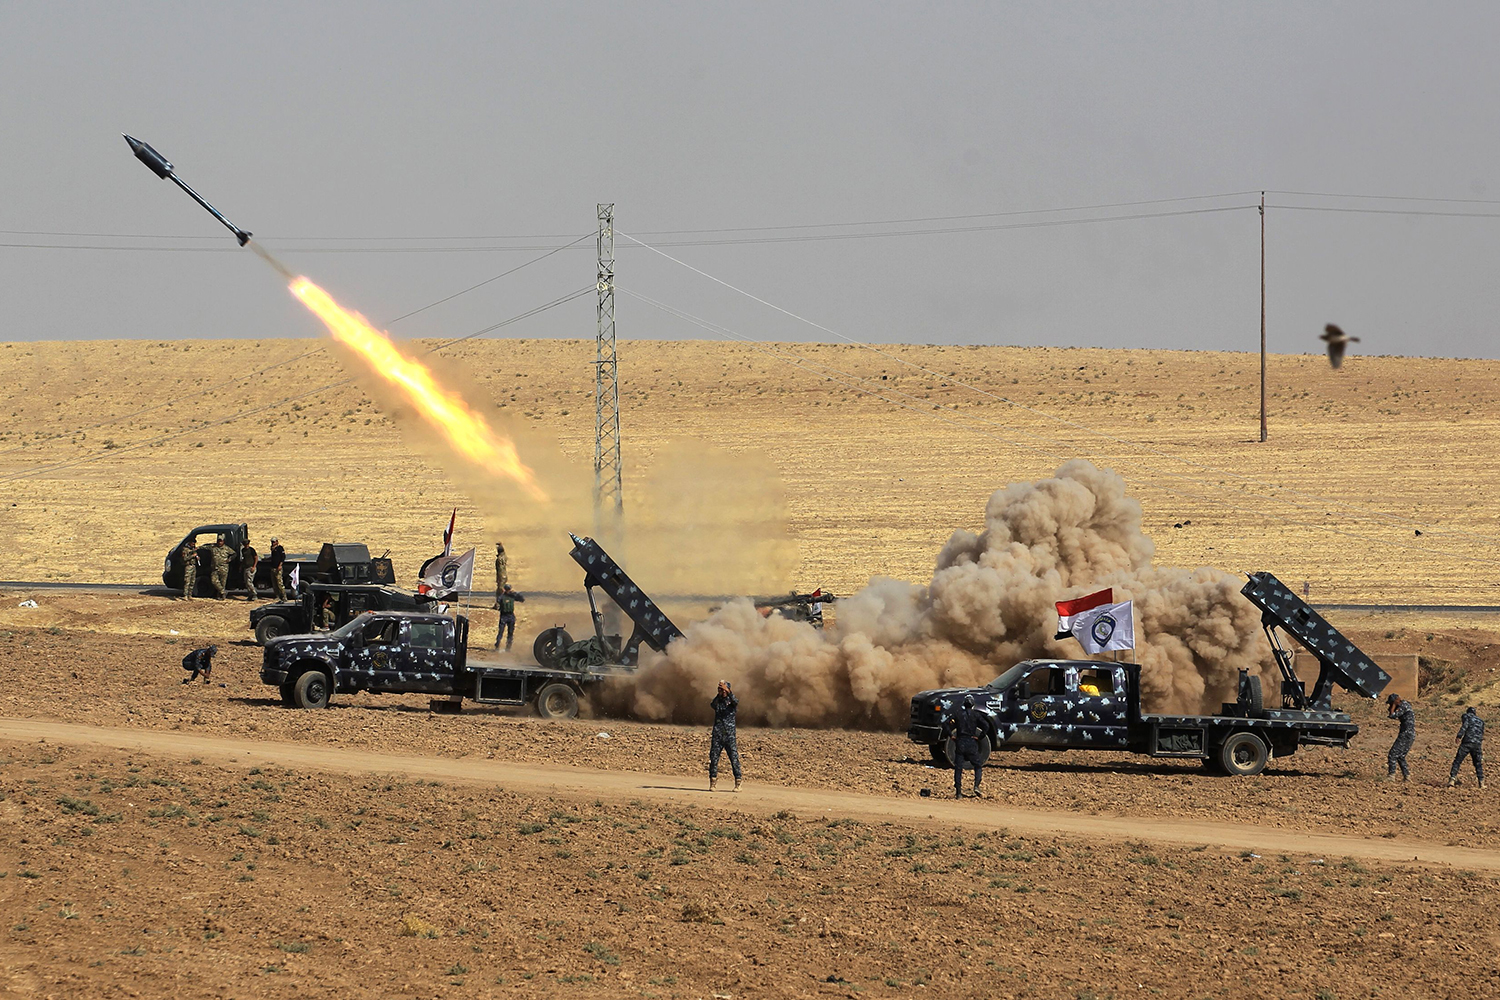 TOPSHOT - A picture taken on October 26, 2017 shows rockets being launched from Iraqi security forces' against Kurdish Peshmerga positions in the area of Faysh Khabur, which is located on the Turkish and Syrian borders in the Iraqi Kurdish autonomous region. / AFP PHOTO / AHMAD AL-RUBAYE        (Photo credit should read AHMAD AL-RUBAYE/AFP/Getty Images)